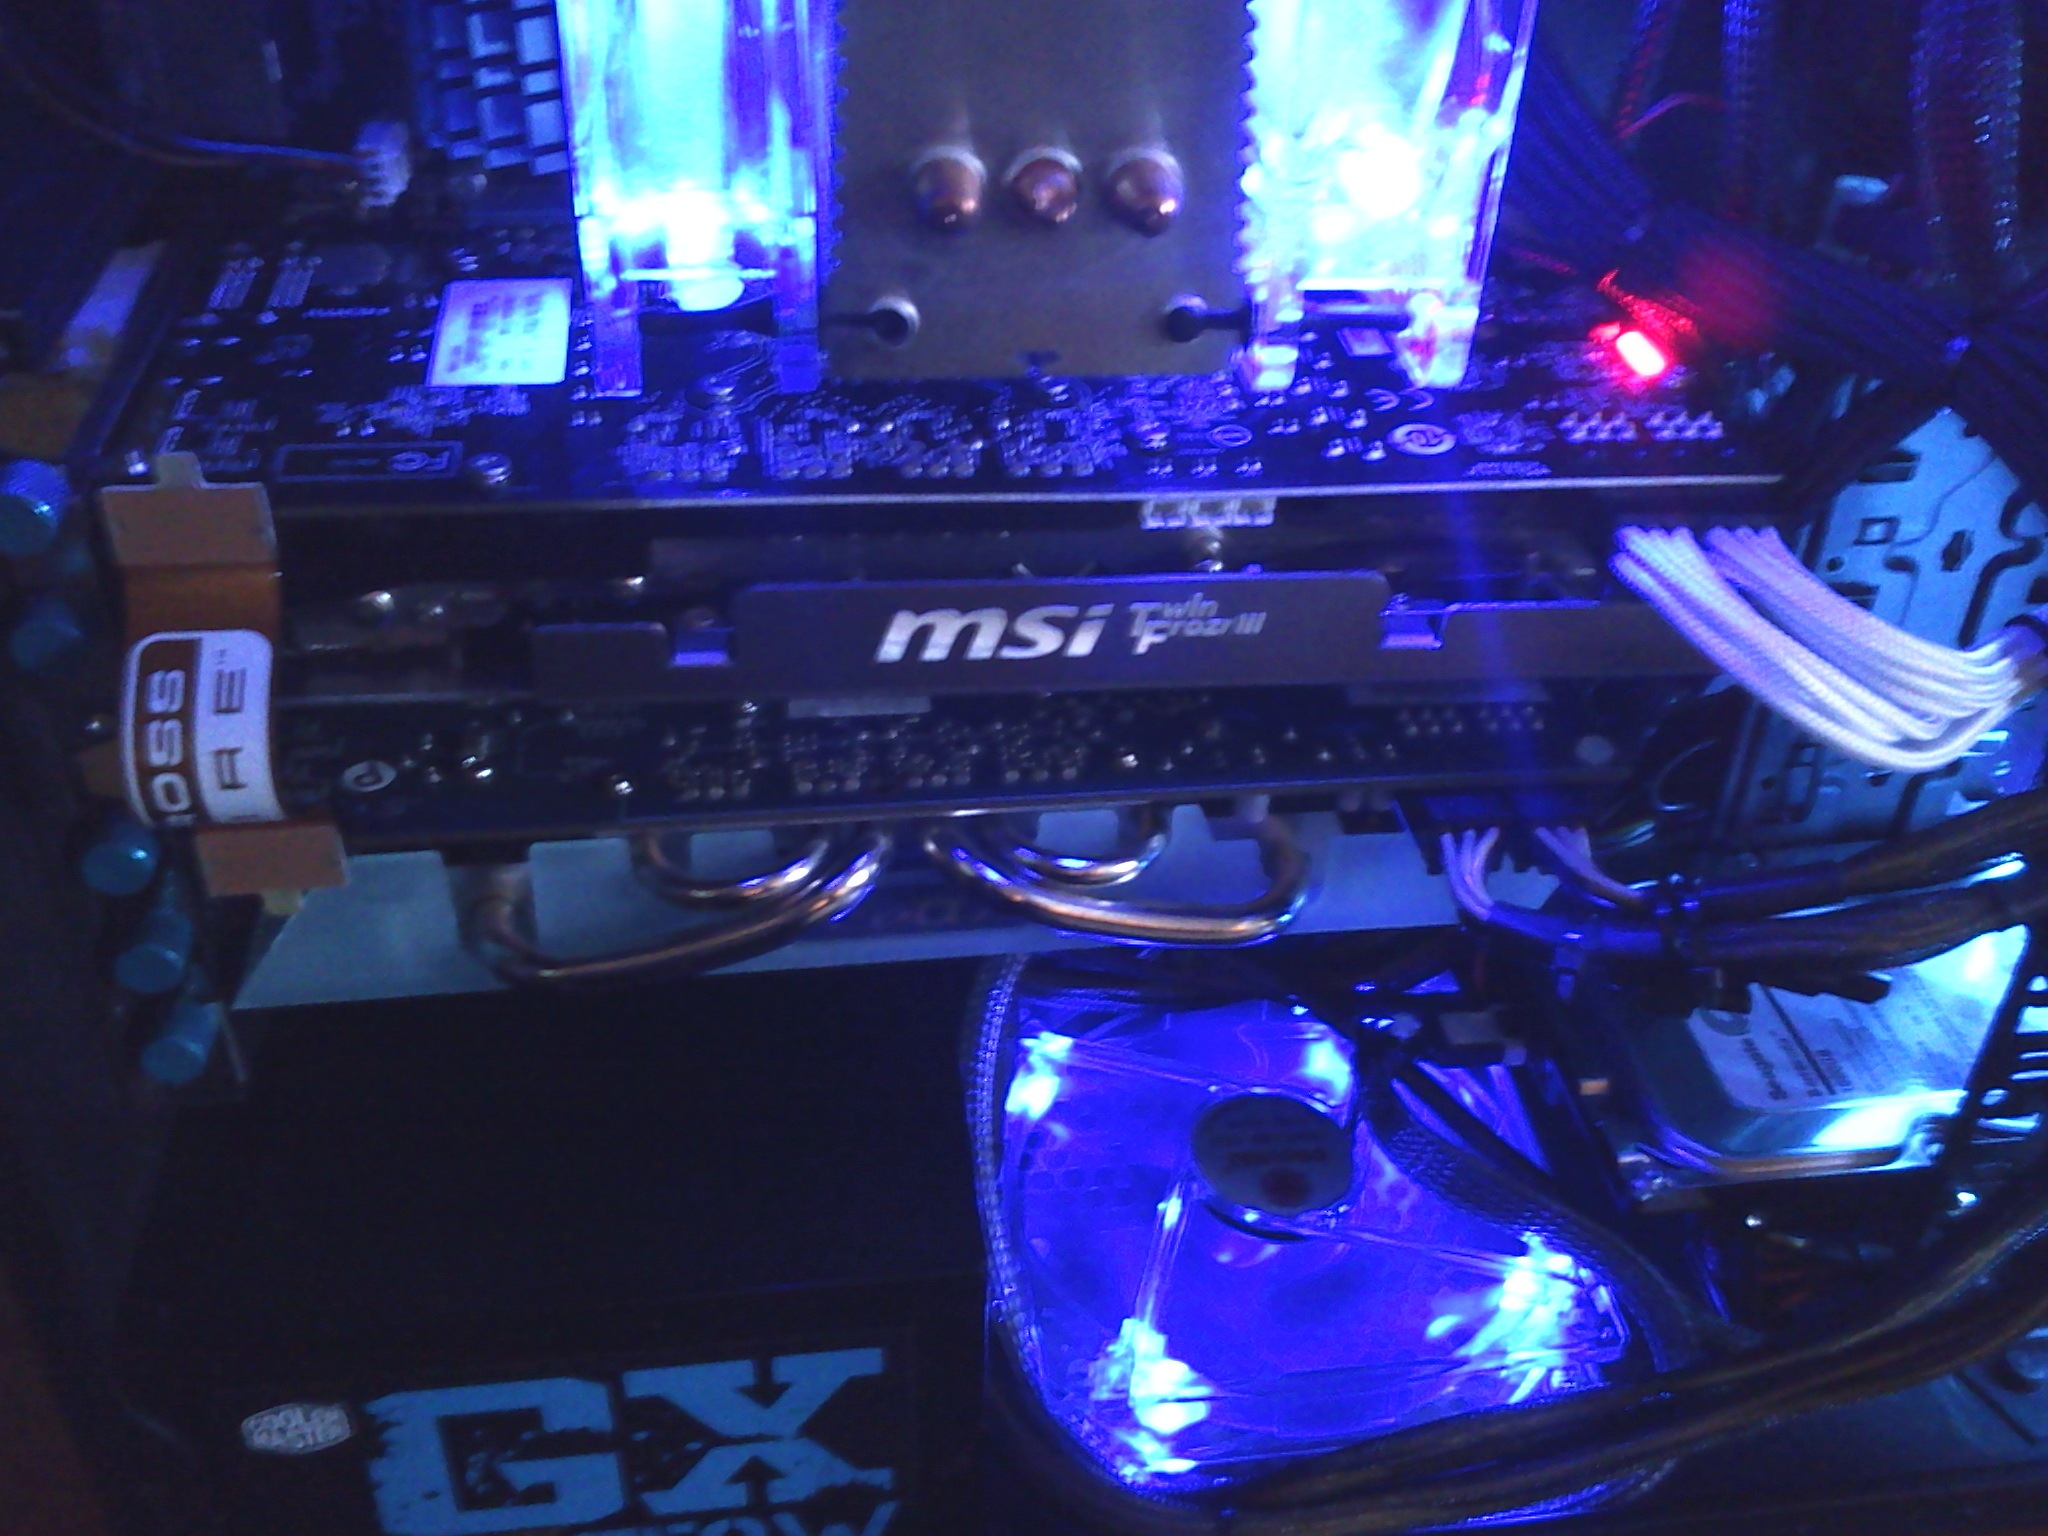 New gpu set-up Radeon 6870 crossfire.... A little better then my old crossfired 6570s-(joke)